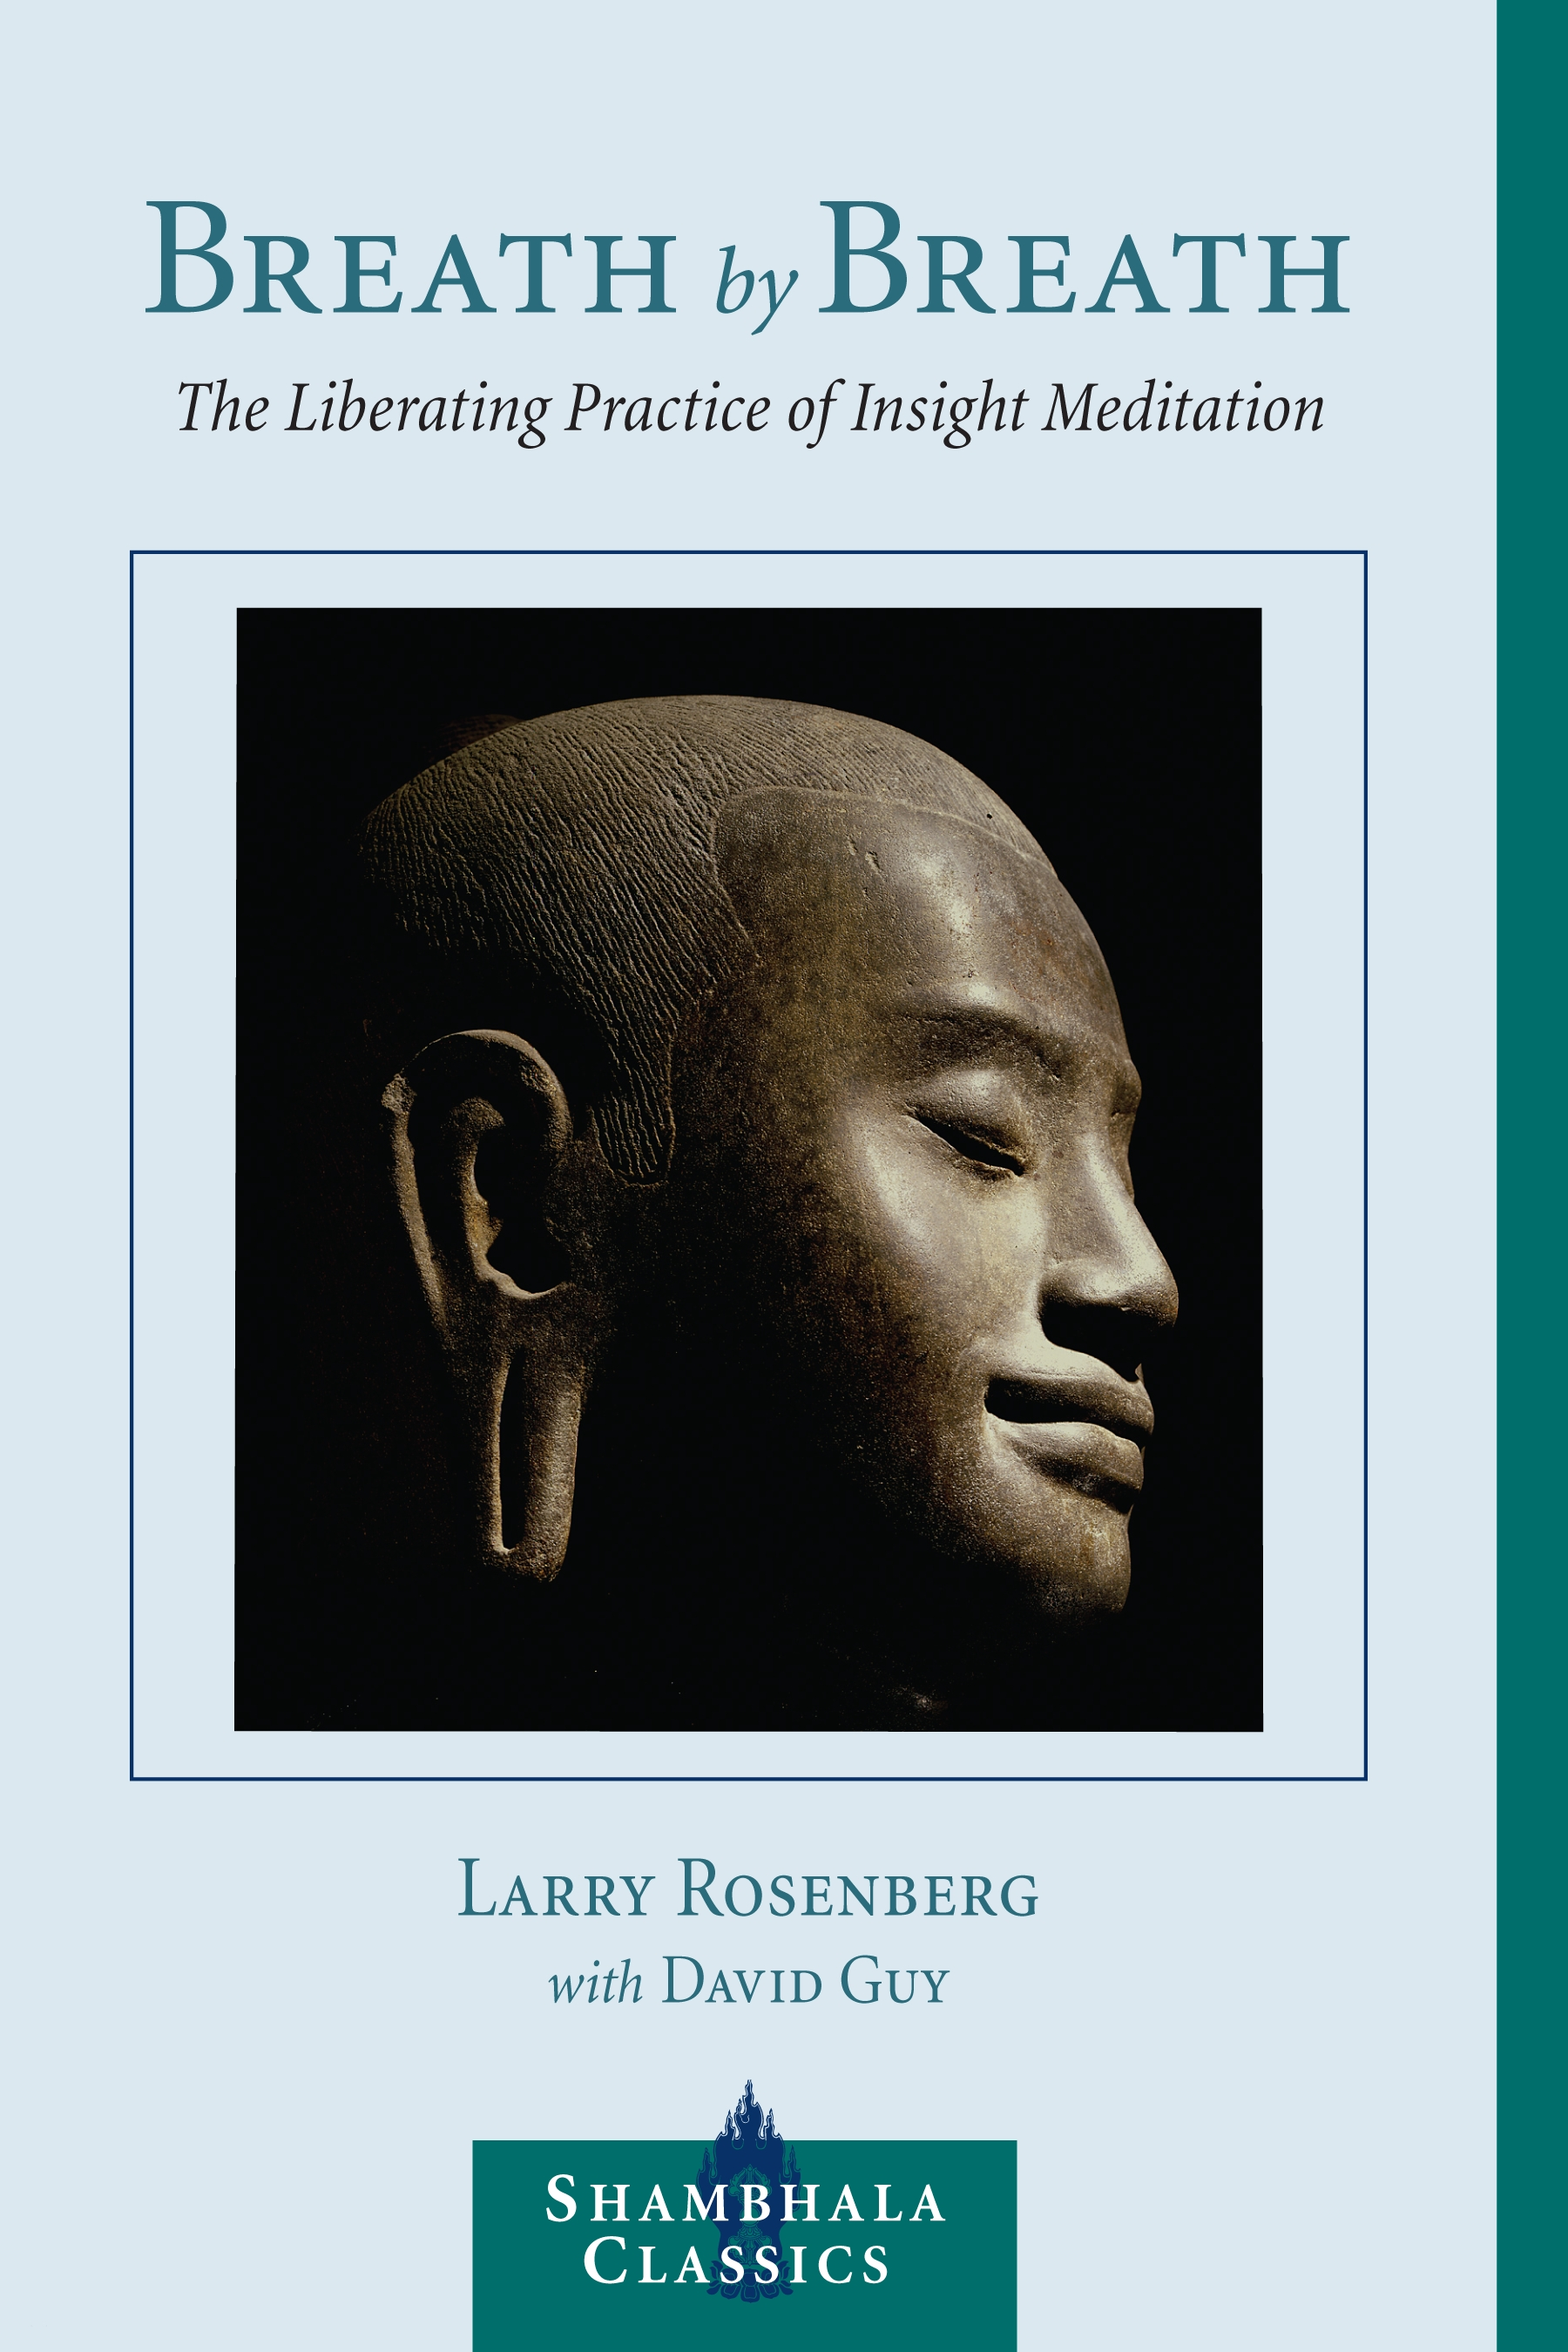 Breath by Breath: The Liberating Practice of Insight Meditation